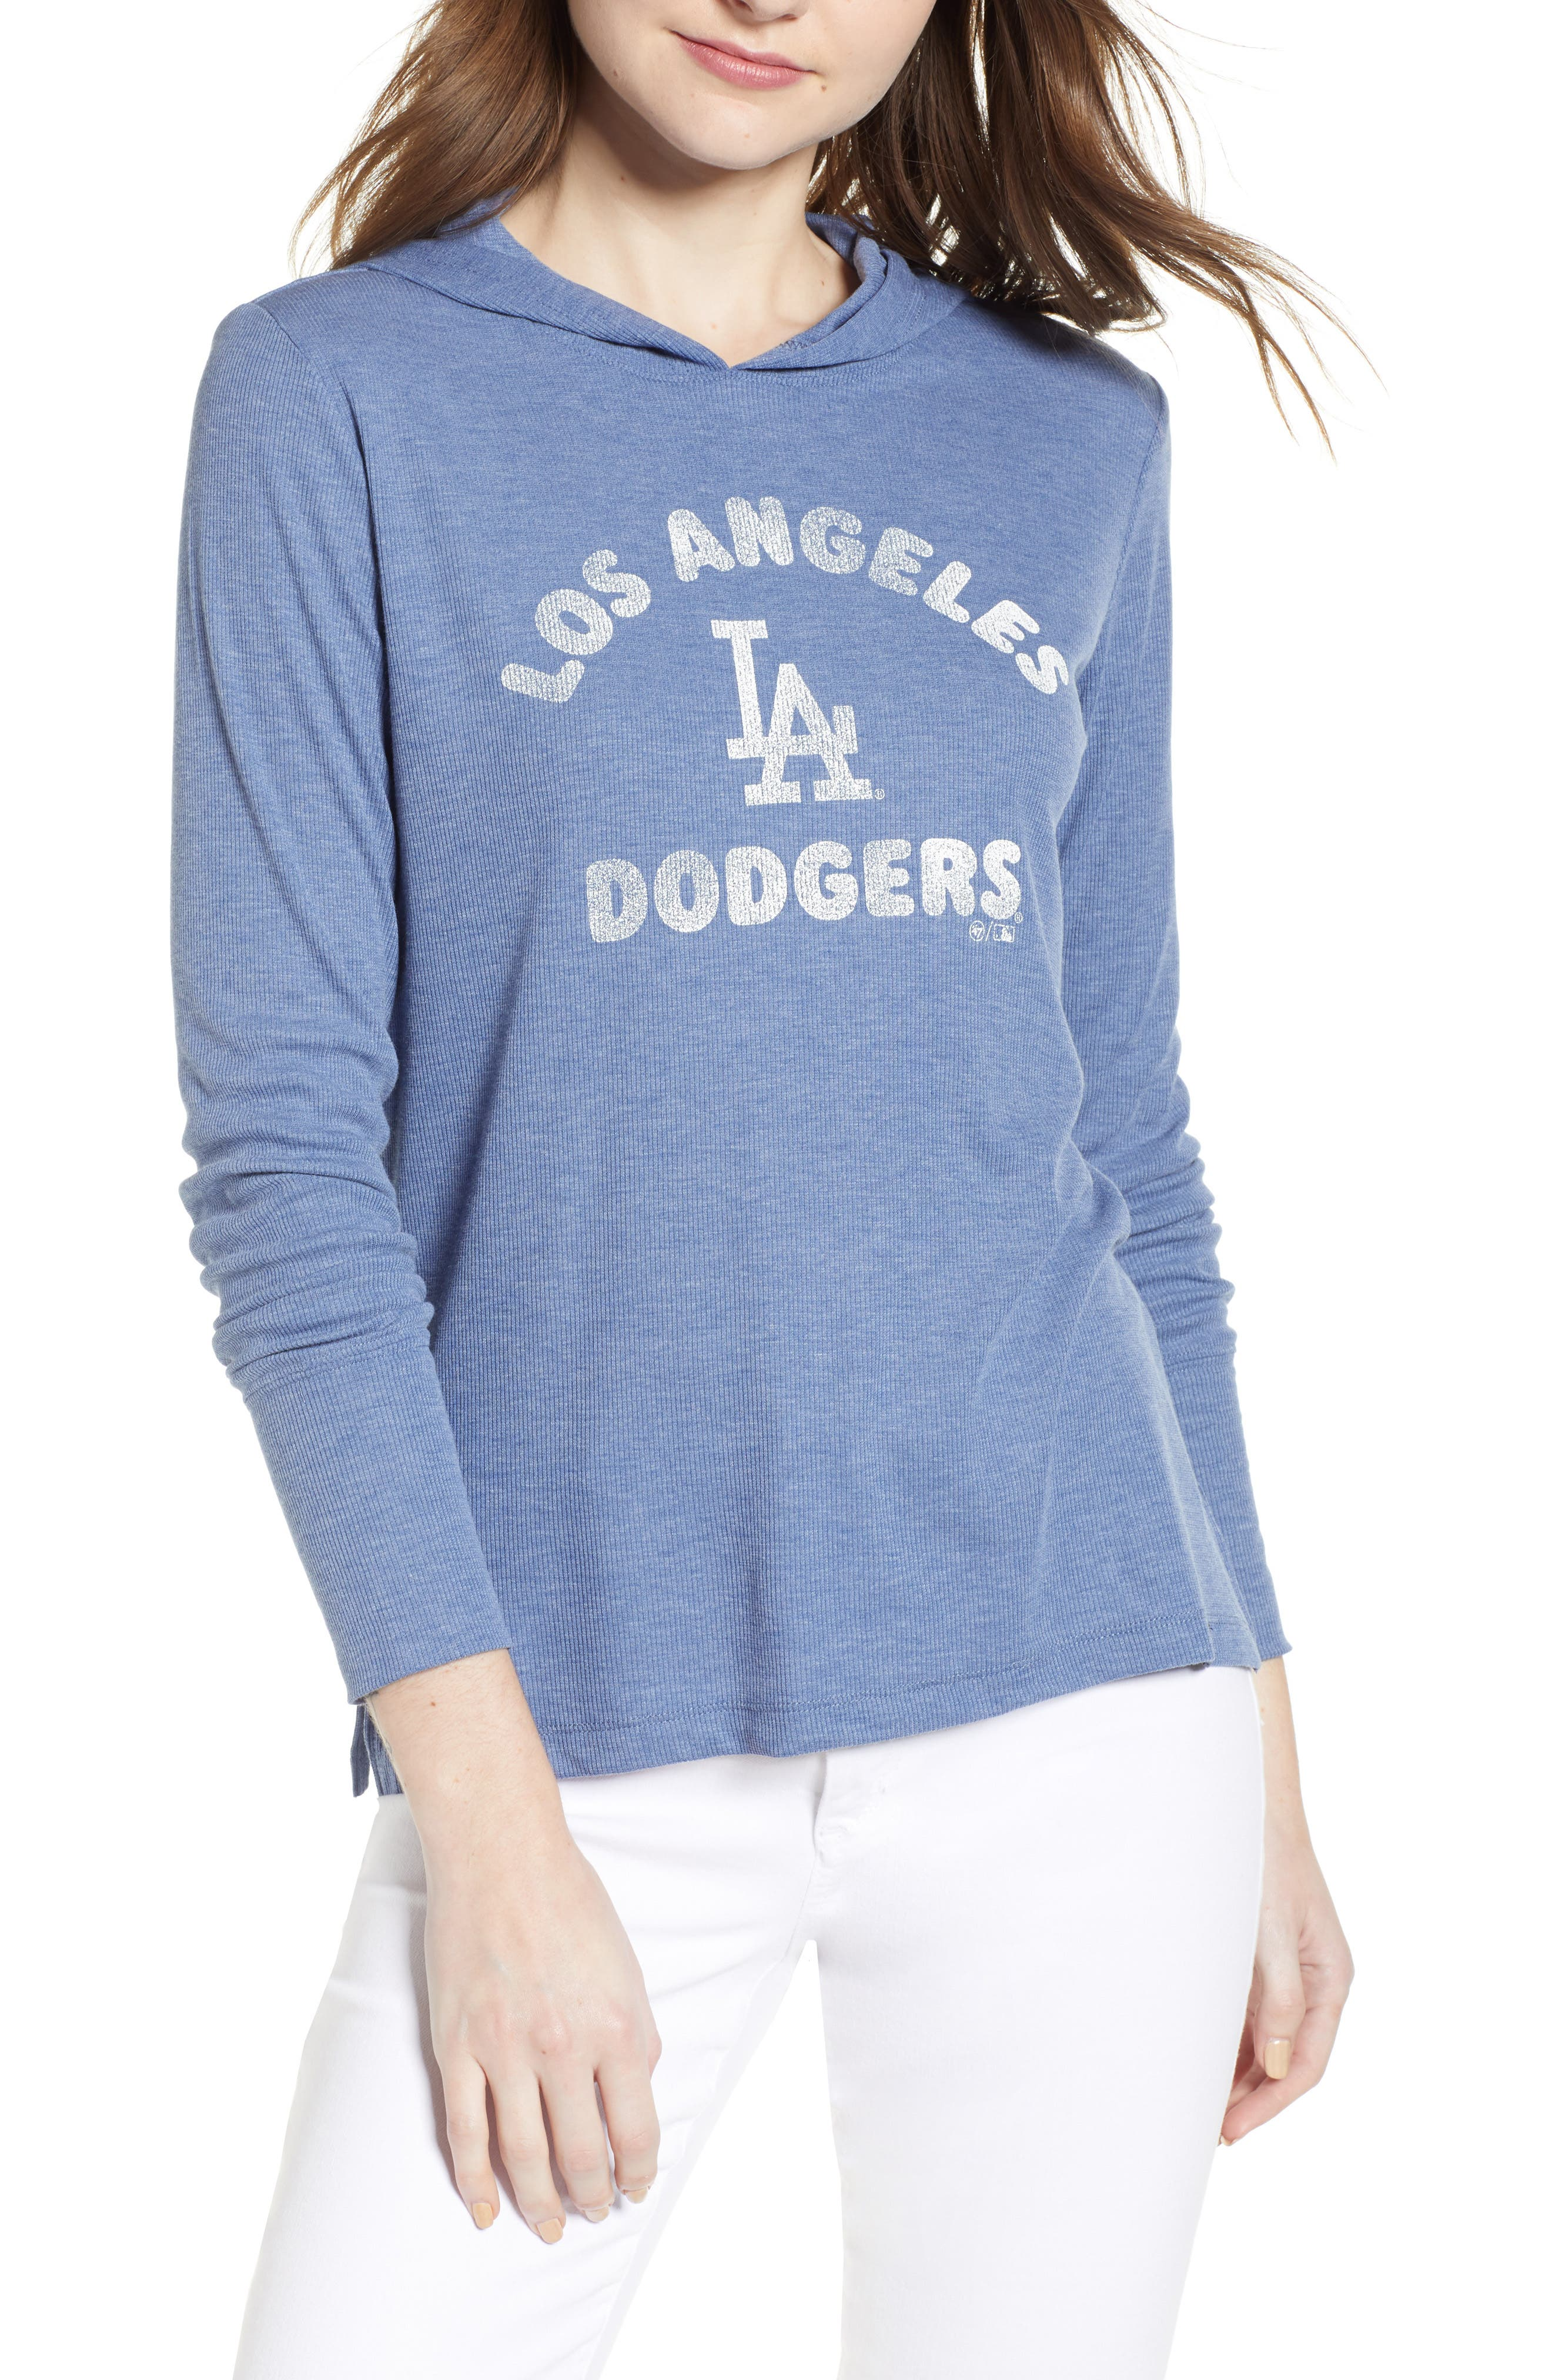 Campbell Los Angeles Dodgers Rib Knit Hooded Top,                             Main thumbnail 1, color,                             Bleacher Blue